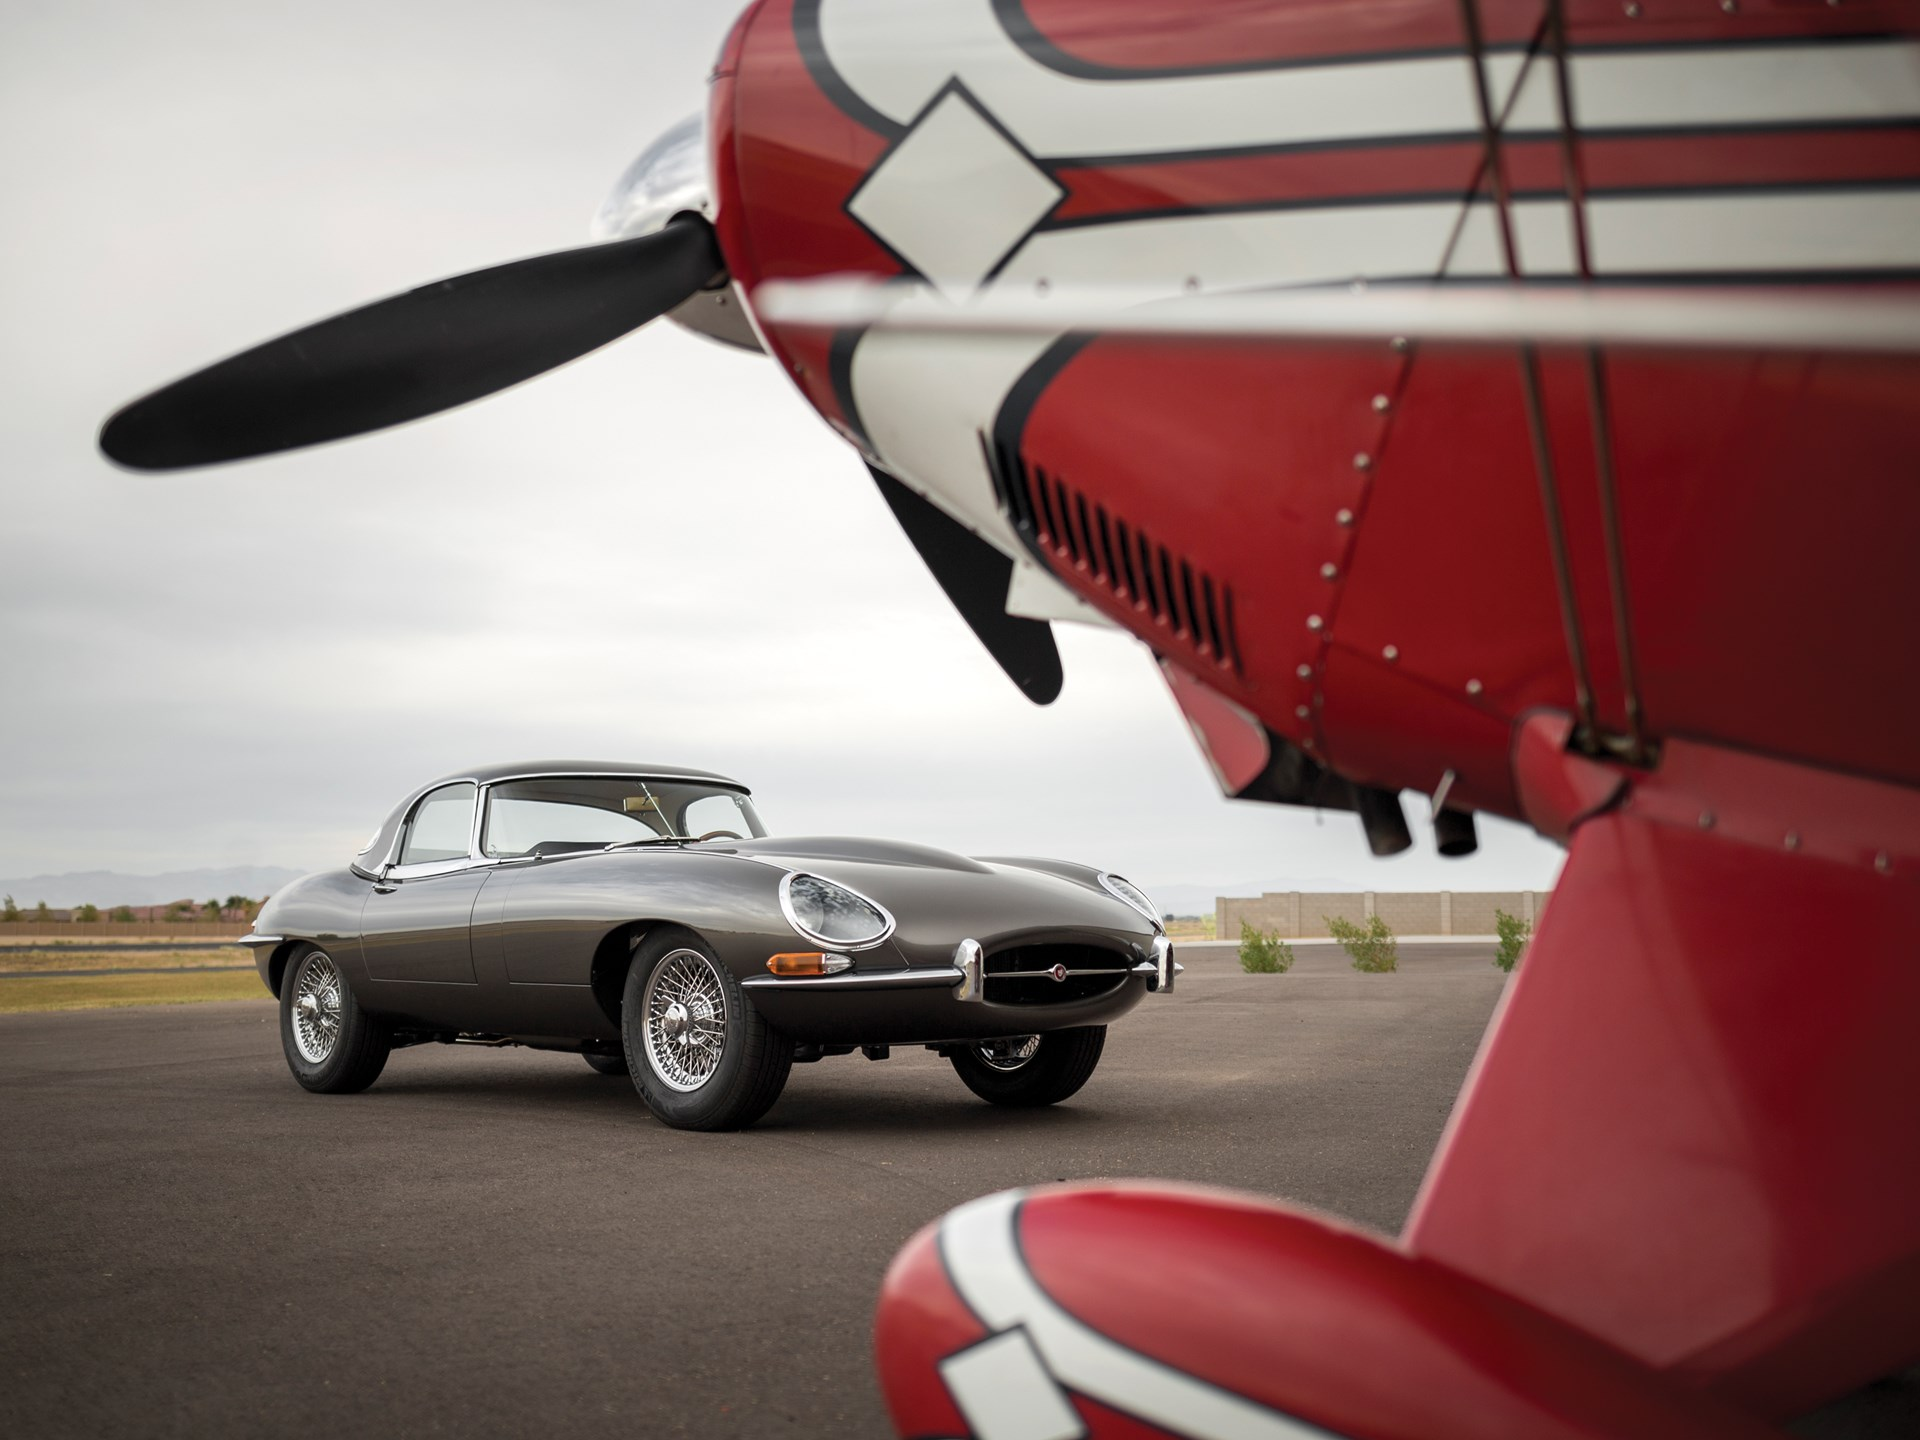 1965 Jaguar E-Type Series 1 4.2-Litre Roadster